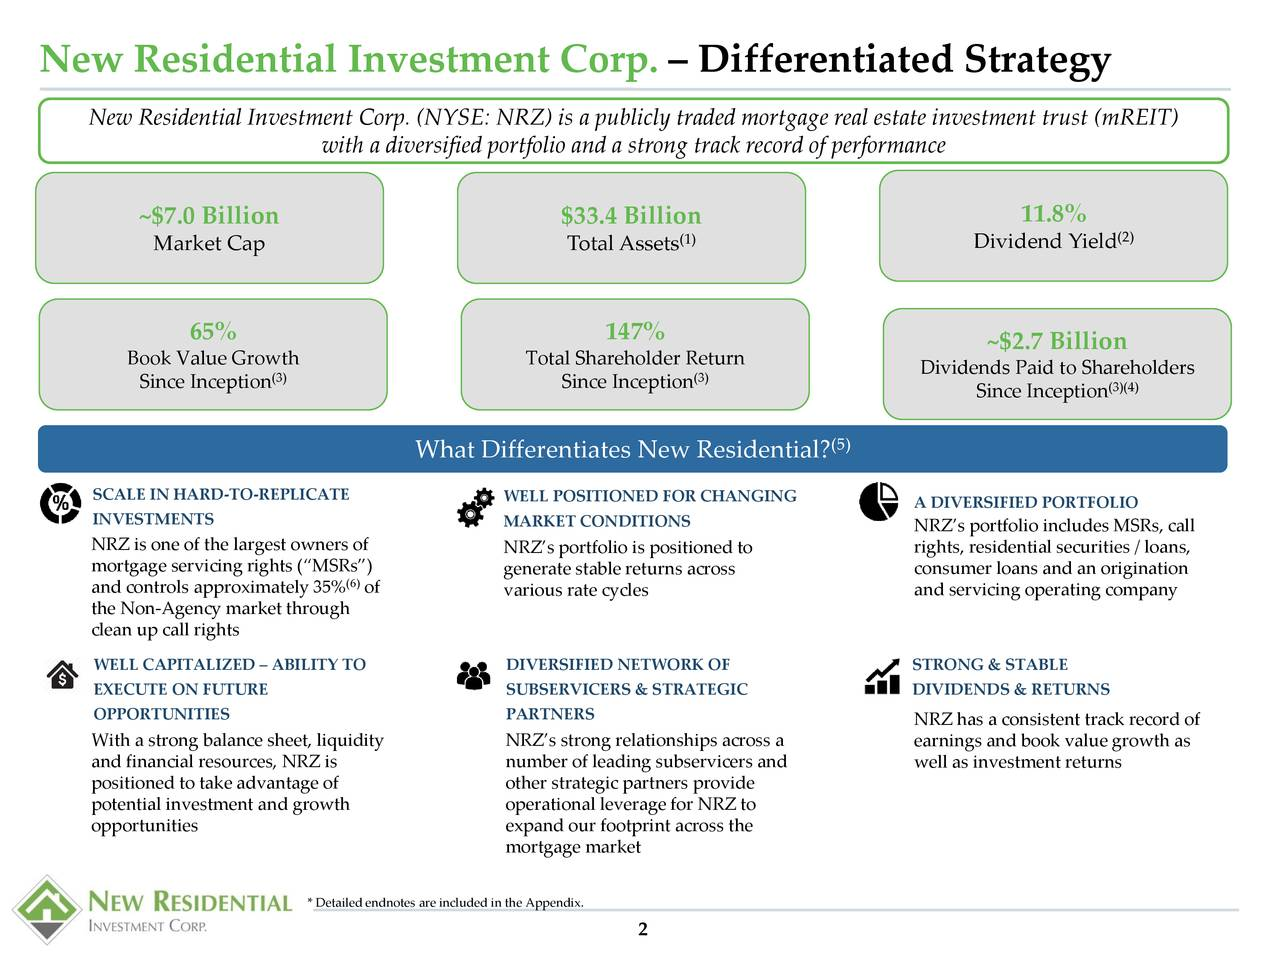 "New Residential Investment Corp. (NYSE: NRZ) is a publicly traded mortgage real estate investment trust (mREIT) with a diversified portfolio and a strong track record of performance ~$7.0 Billion $33.4 Billion 11.8% (1) Dividend Yield (2) Market Cap Total Assets 65% 147% ~$2.7 Billion Book Value Growth Total Shareholder Return Dividends Paid to Shareholders Since Inception (3) Since Inception(3) (3)(4) Since Inception (5) What Differentiates New Residential? SCALE IN HARD-TO-REPLICATE WELL POSITIONED FOR CHANGING INVESTMENTS A DIVERSIFIED PORTFOLIO MARKET CONDITIONS NRZ's portfolio includes MSRs, call NRZ is one of the largest owners of NRZ's portfolio is positioned to rights, residential securities /~6%ans, mortgage servicing rights (""MSRs"") generate stable returns across consumer loans and an origination and controls approximately 35%6of various rate cycles and servicing operating companyYoY Book the Non-Agency market through Value clean up call rights Increase WELL CAPITALIZED – ABILITY TO DIVERSIFIED NETWORK OF STRONG & STABLE EXECUTE ON FUTURE SUBSERVICERS & STRATEGIC DIVIDENDS & RETURNS OPPORTUNITIES PARTNERS NRZ has a consistent track record of With a strong balance sheet, liquidity NRZ's strong relationships across a earnings and book value growth as and financial resources, NRZ is number of leading subservicers and well as investment returns positioned to take advantage of other strategic partners provide potential investment and growth operational leverage for NRZ to opportunities expand our footprint across the mortgage market * Detailed endnotes are included in the Appendix. 2"